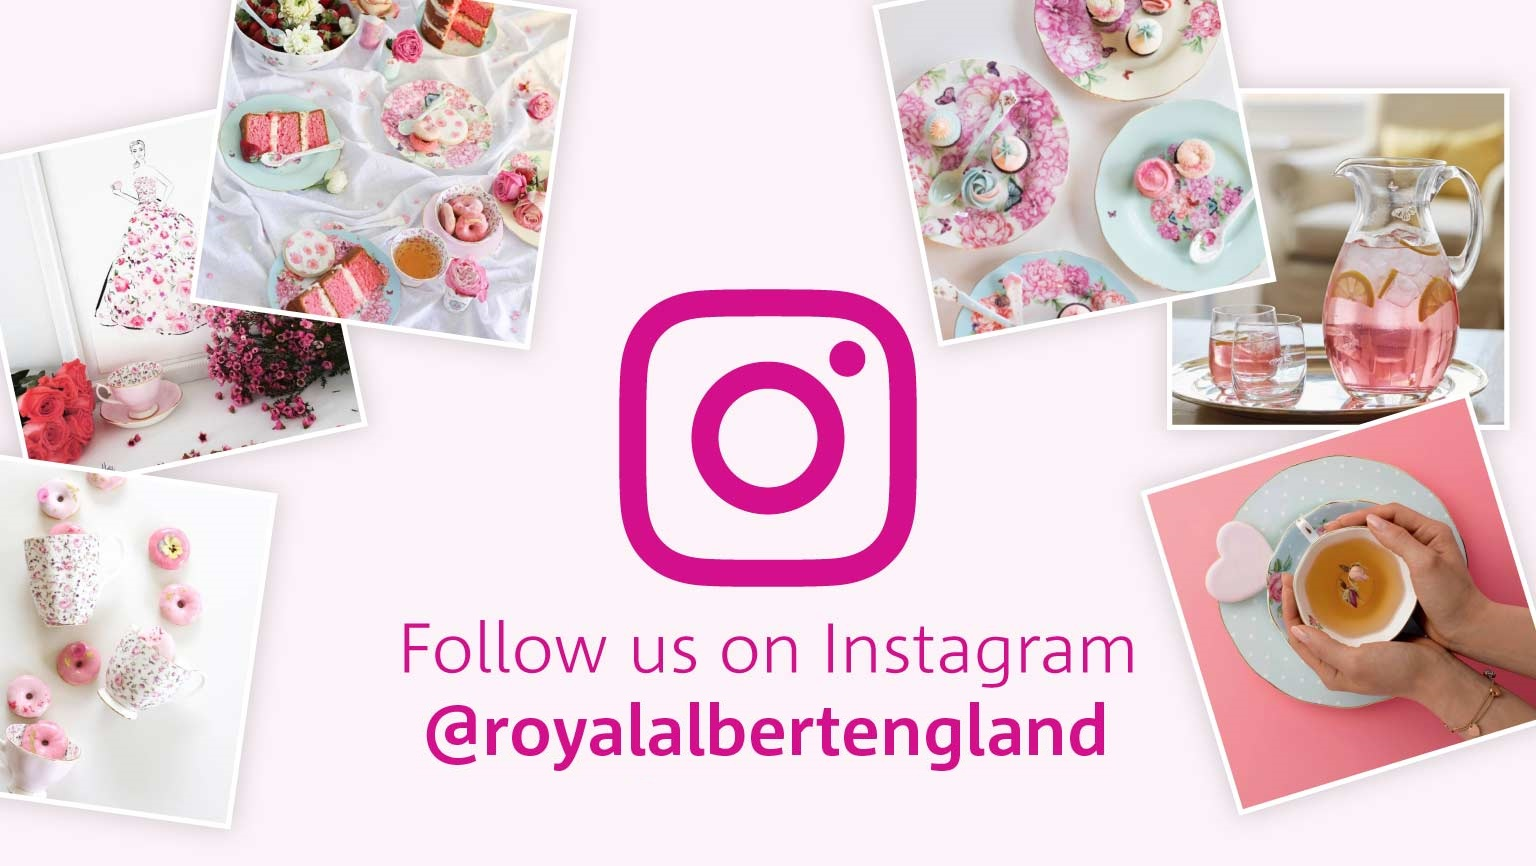 Follow us on Instagram @royalalbertaus